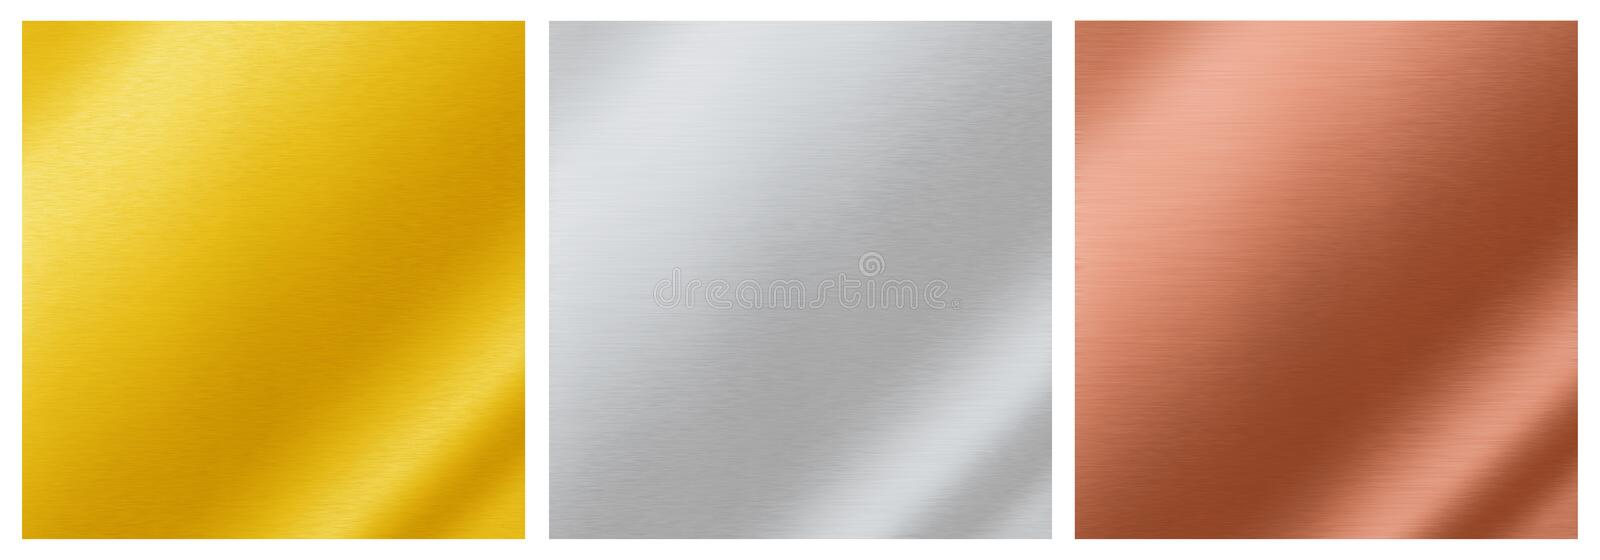 Metallic background textures of gold, silver, bronze, Aluminum,. Collection: Brushed Metallic of gold, silver, bronze, Aluminum, brass, steel, platinum - can use stock photo